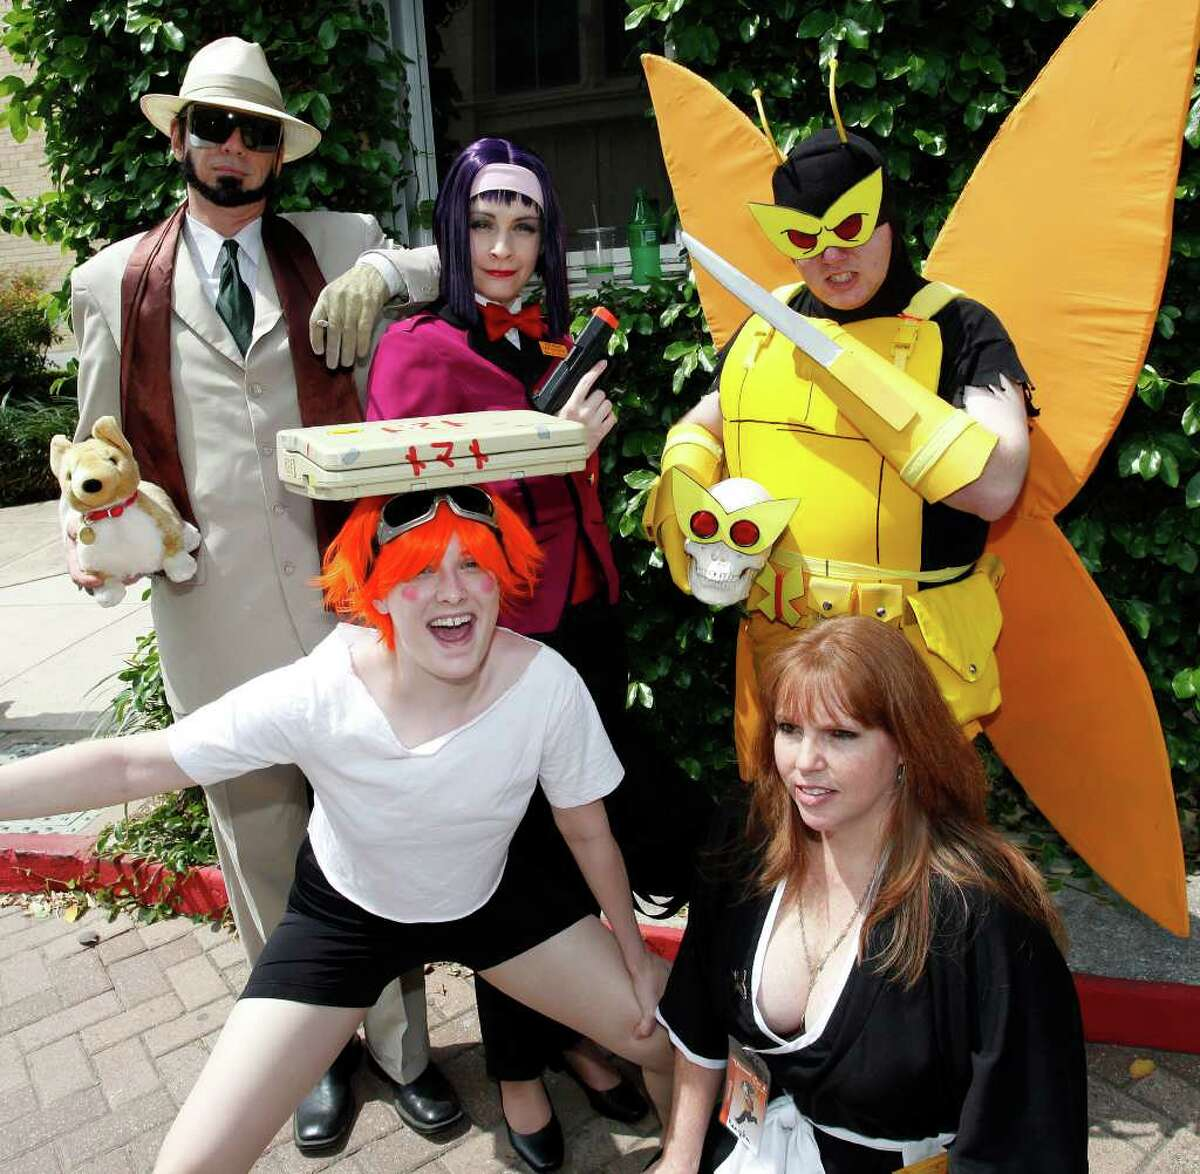 """FEATURES; ACS MIZUUMI CON JMS; 03/26/11; From the left in front, Honey Cherry as """"Ed"""", Red Rogers as """"Rangiku"""" back row from the left Jet_Texas as """"Jet Black"""", Maromi as """"Faye Valentine"""" and Shadowfox as """"Henchman 21"""" at Muzuumi-Con 4, anime convention, Saturday, March 26, 2011, at Our Lady of the Lake University in San Antonio. ( Photo by J. Michael Short / SPECIAL )"""